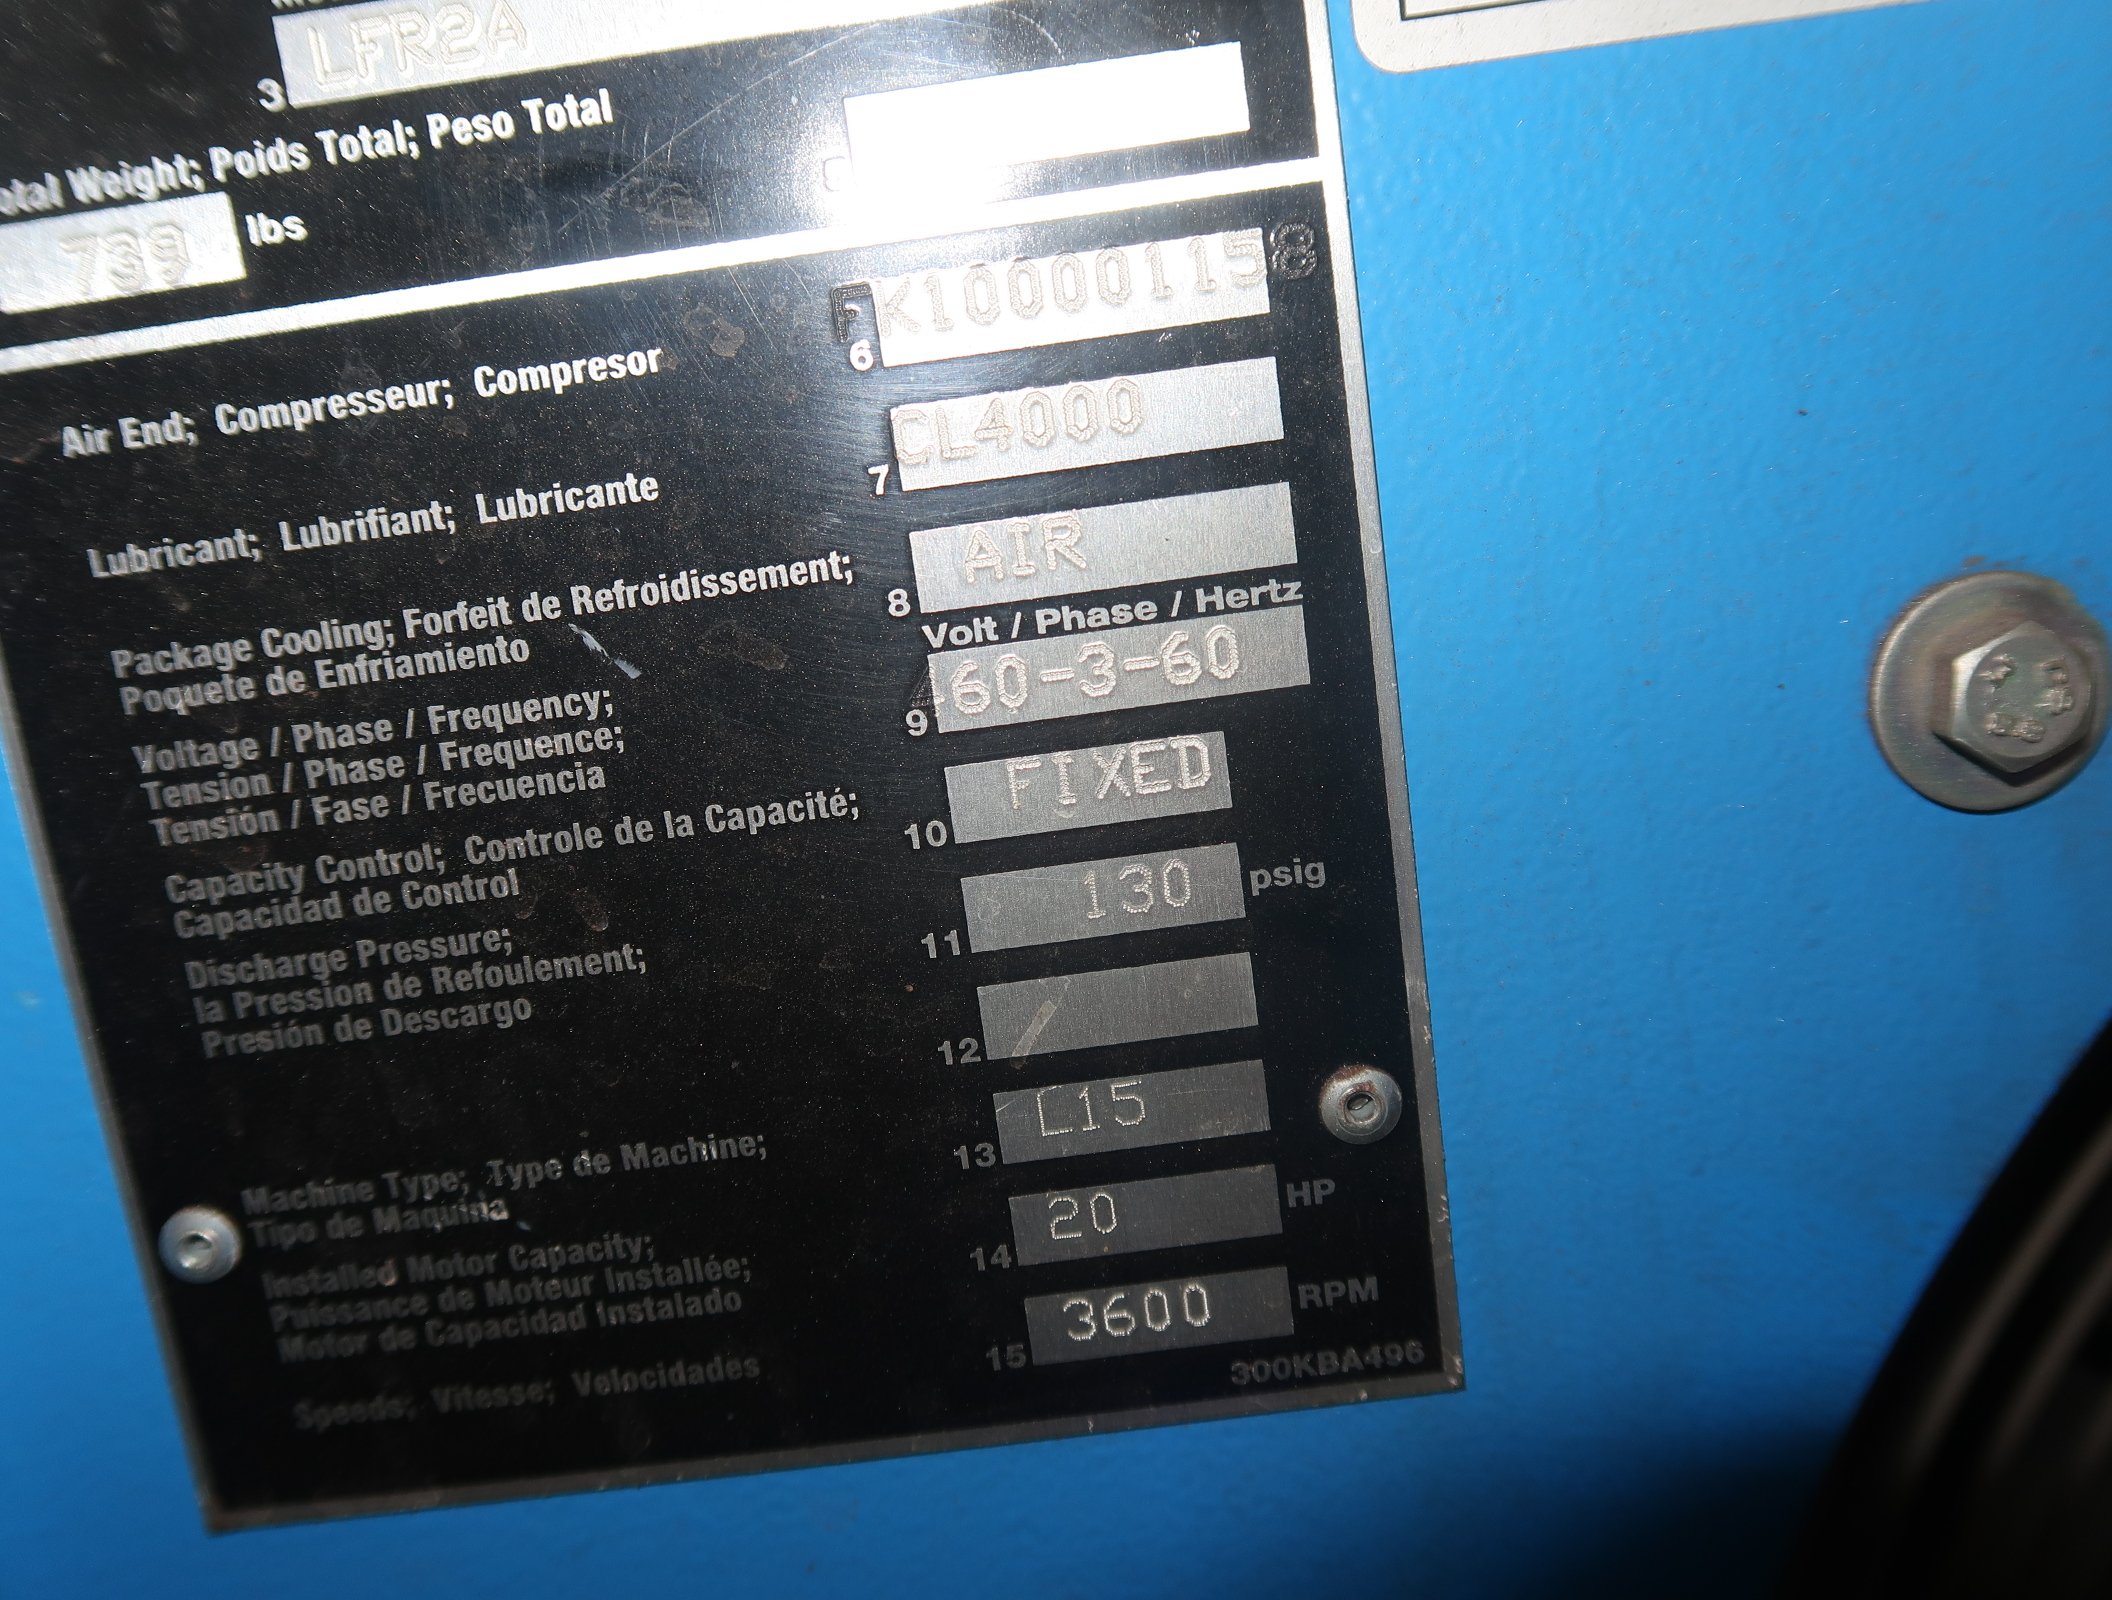 2014 COMP AIR 20HP ROTARY SCREW AIRCOMPRESSOR MDL. LFRZA, 3PH W/ VERTIAL AIR RECEIVER, SN. D125008 - Image 4 of 7